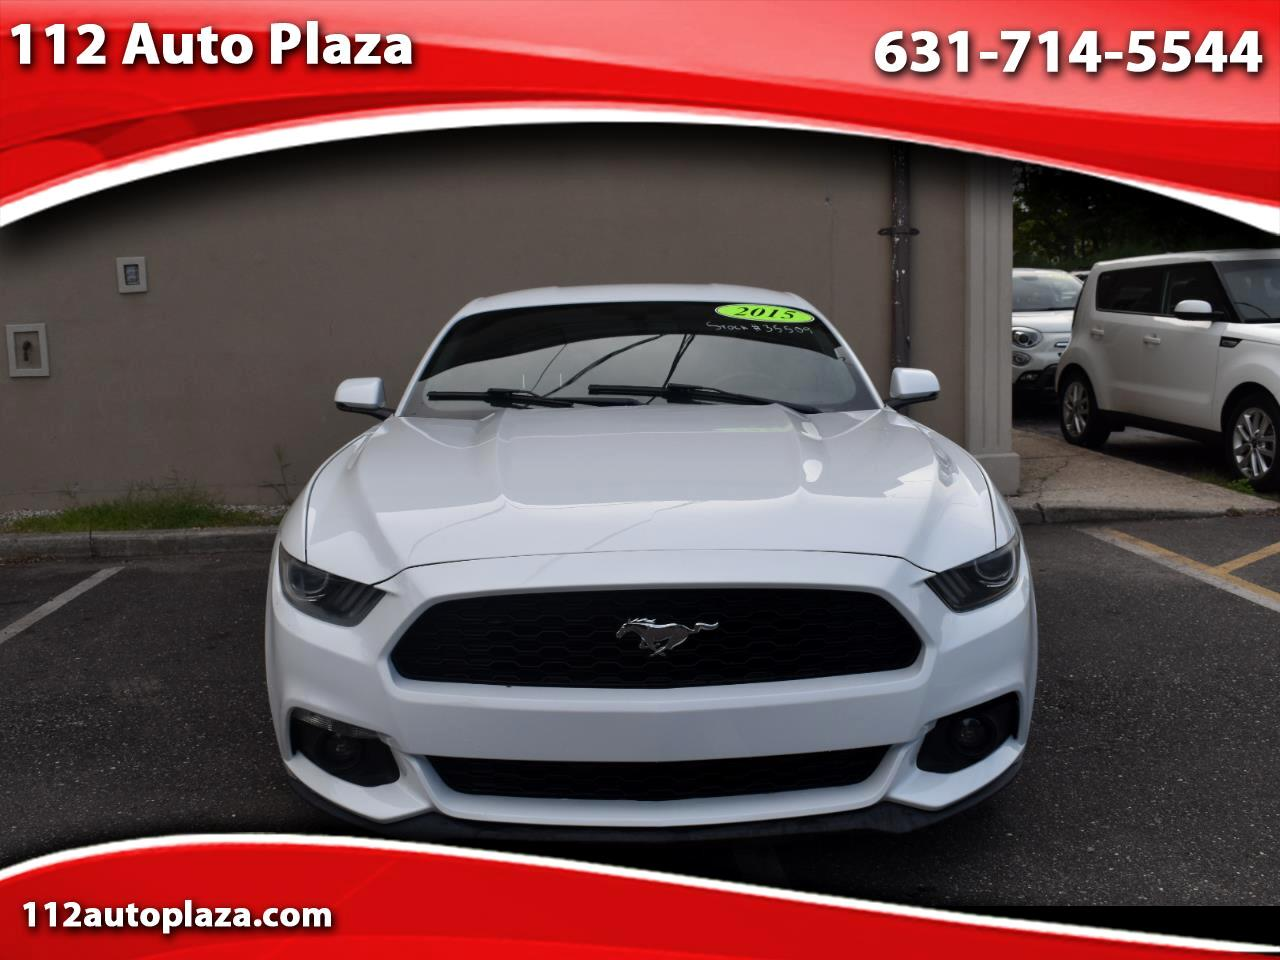 Ford Mustang 2dr Fastback EcoBoost 2015